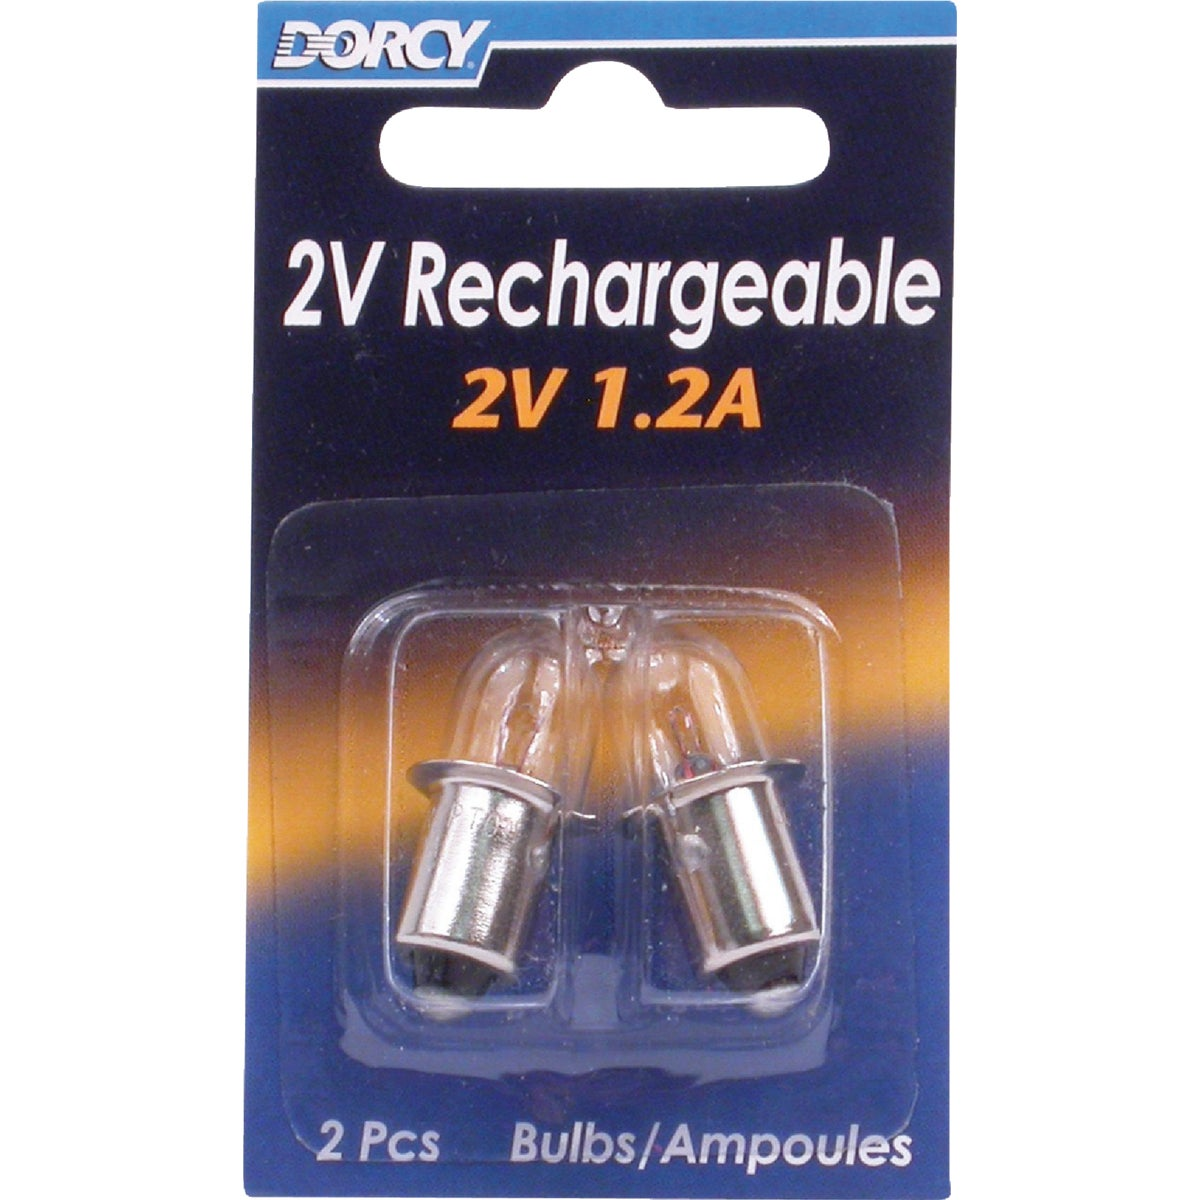 2V FLASHLIGHT BULB - 41-1671 by Dorcy International